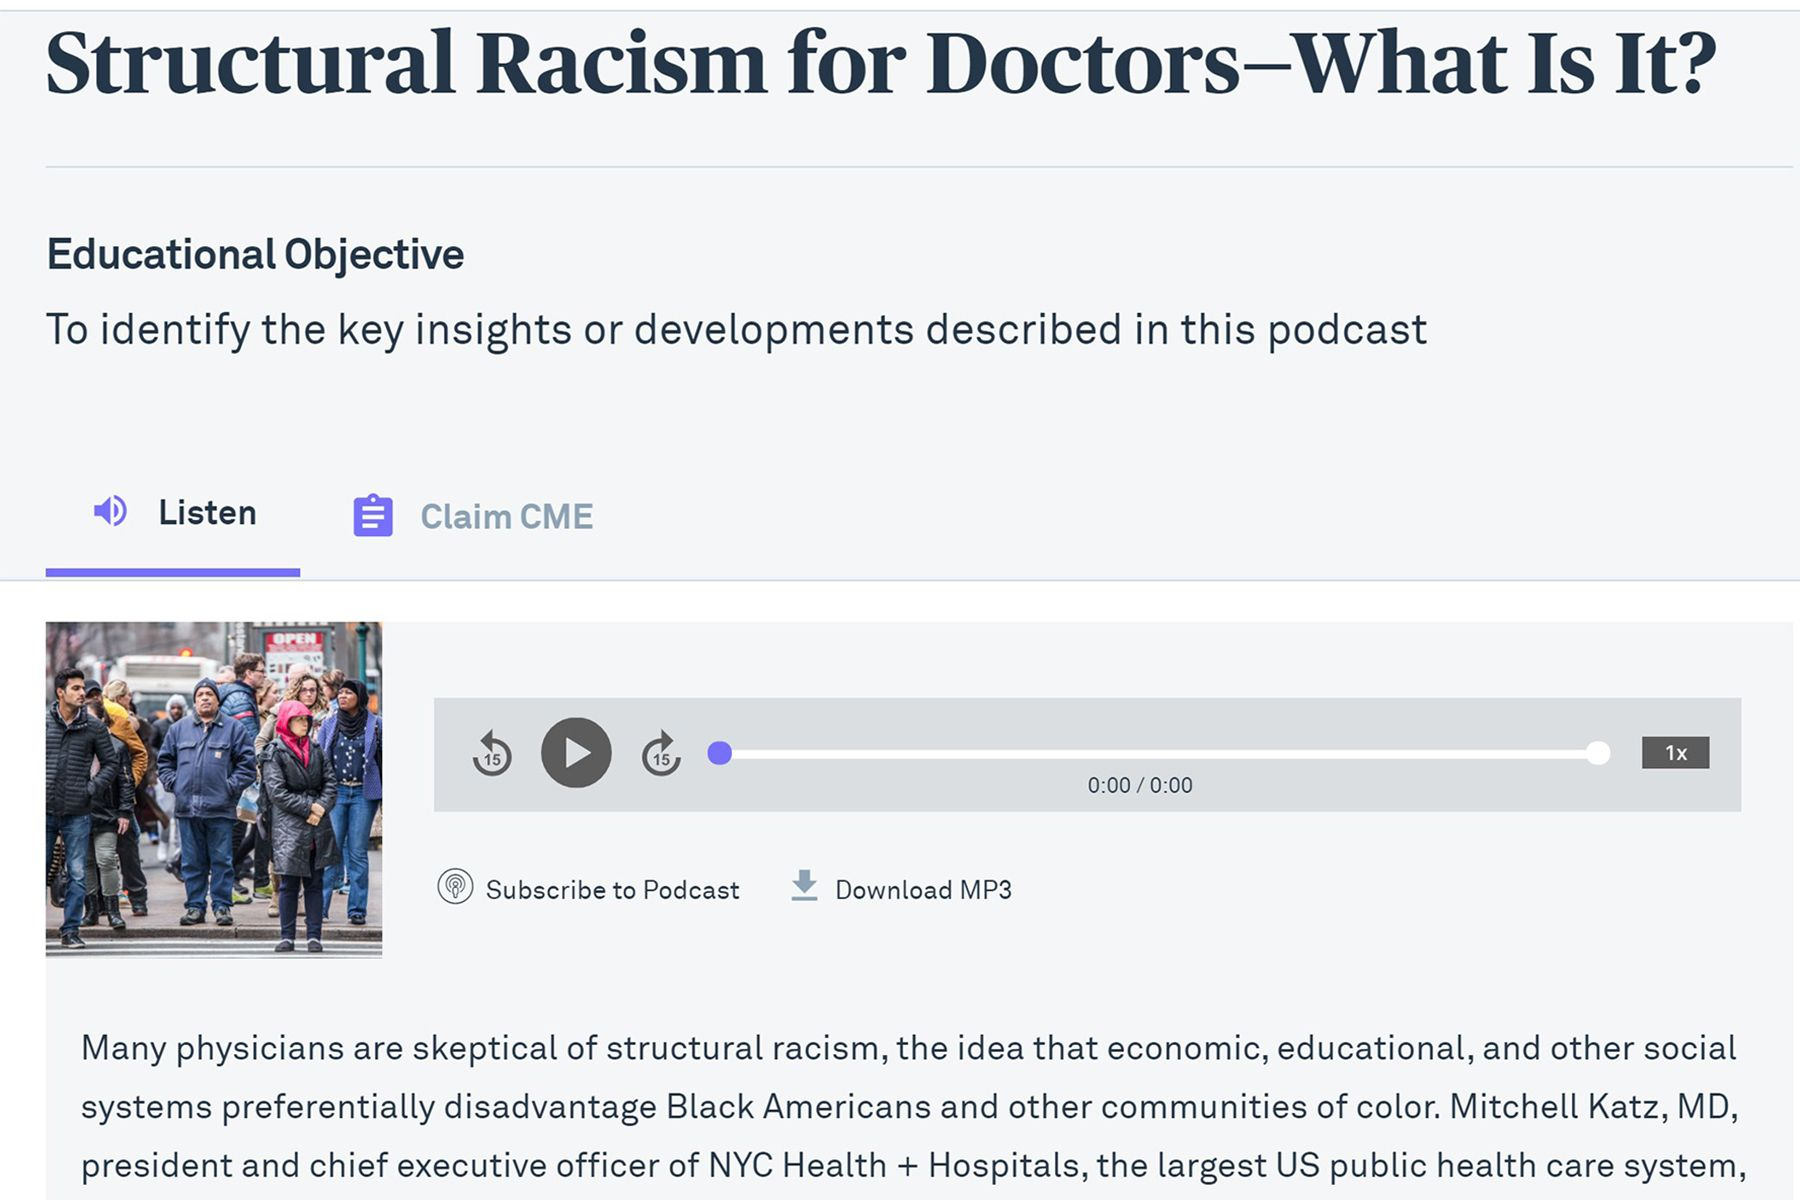 JAMA Podcast on Racism in Medicine Faces Backlash